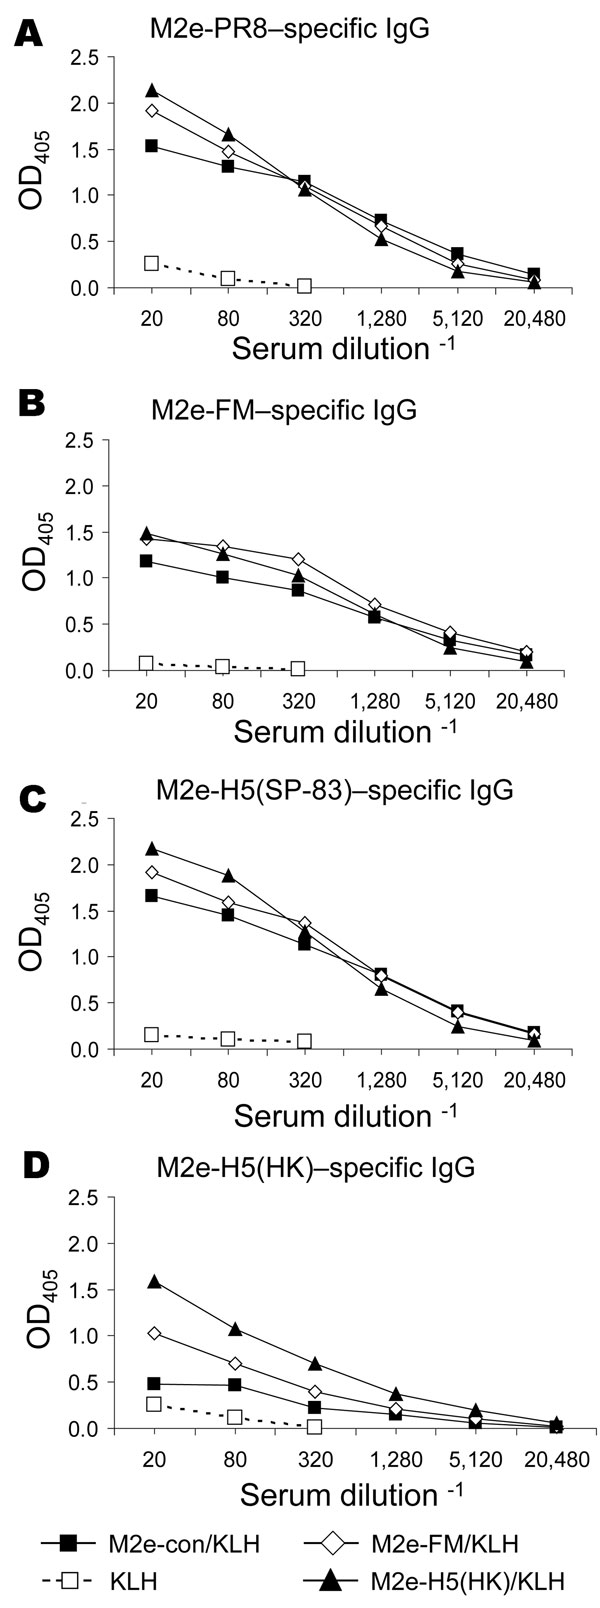 Results of matrix protein 2 (M2)e–keyhole limpet hemocyanin (KLH) vaccination, showing induction of cross-reactive antibody responses. Mice (7–9 per group) were immunized intraperitoneally with KLH or M2e peptides conjugated to KLH (M2e-con/KLH, M2e-FM/KLH, or M2e-H5(HK)/KLH) in complete Freund's adjuvant. After 21 days, the mice were given an intraperitoneal booster with KLH or M2e-peptide/KLH in incomplete Freund's adjuvant. Immune serum was collected 13 days after booster and assayed for immu